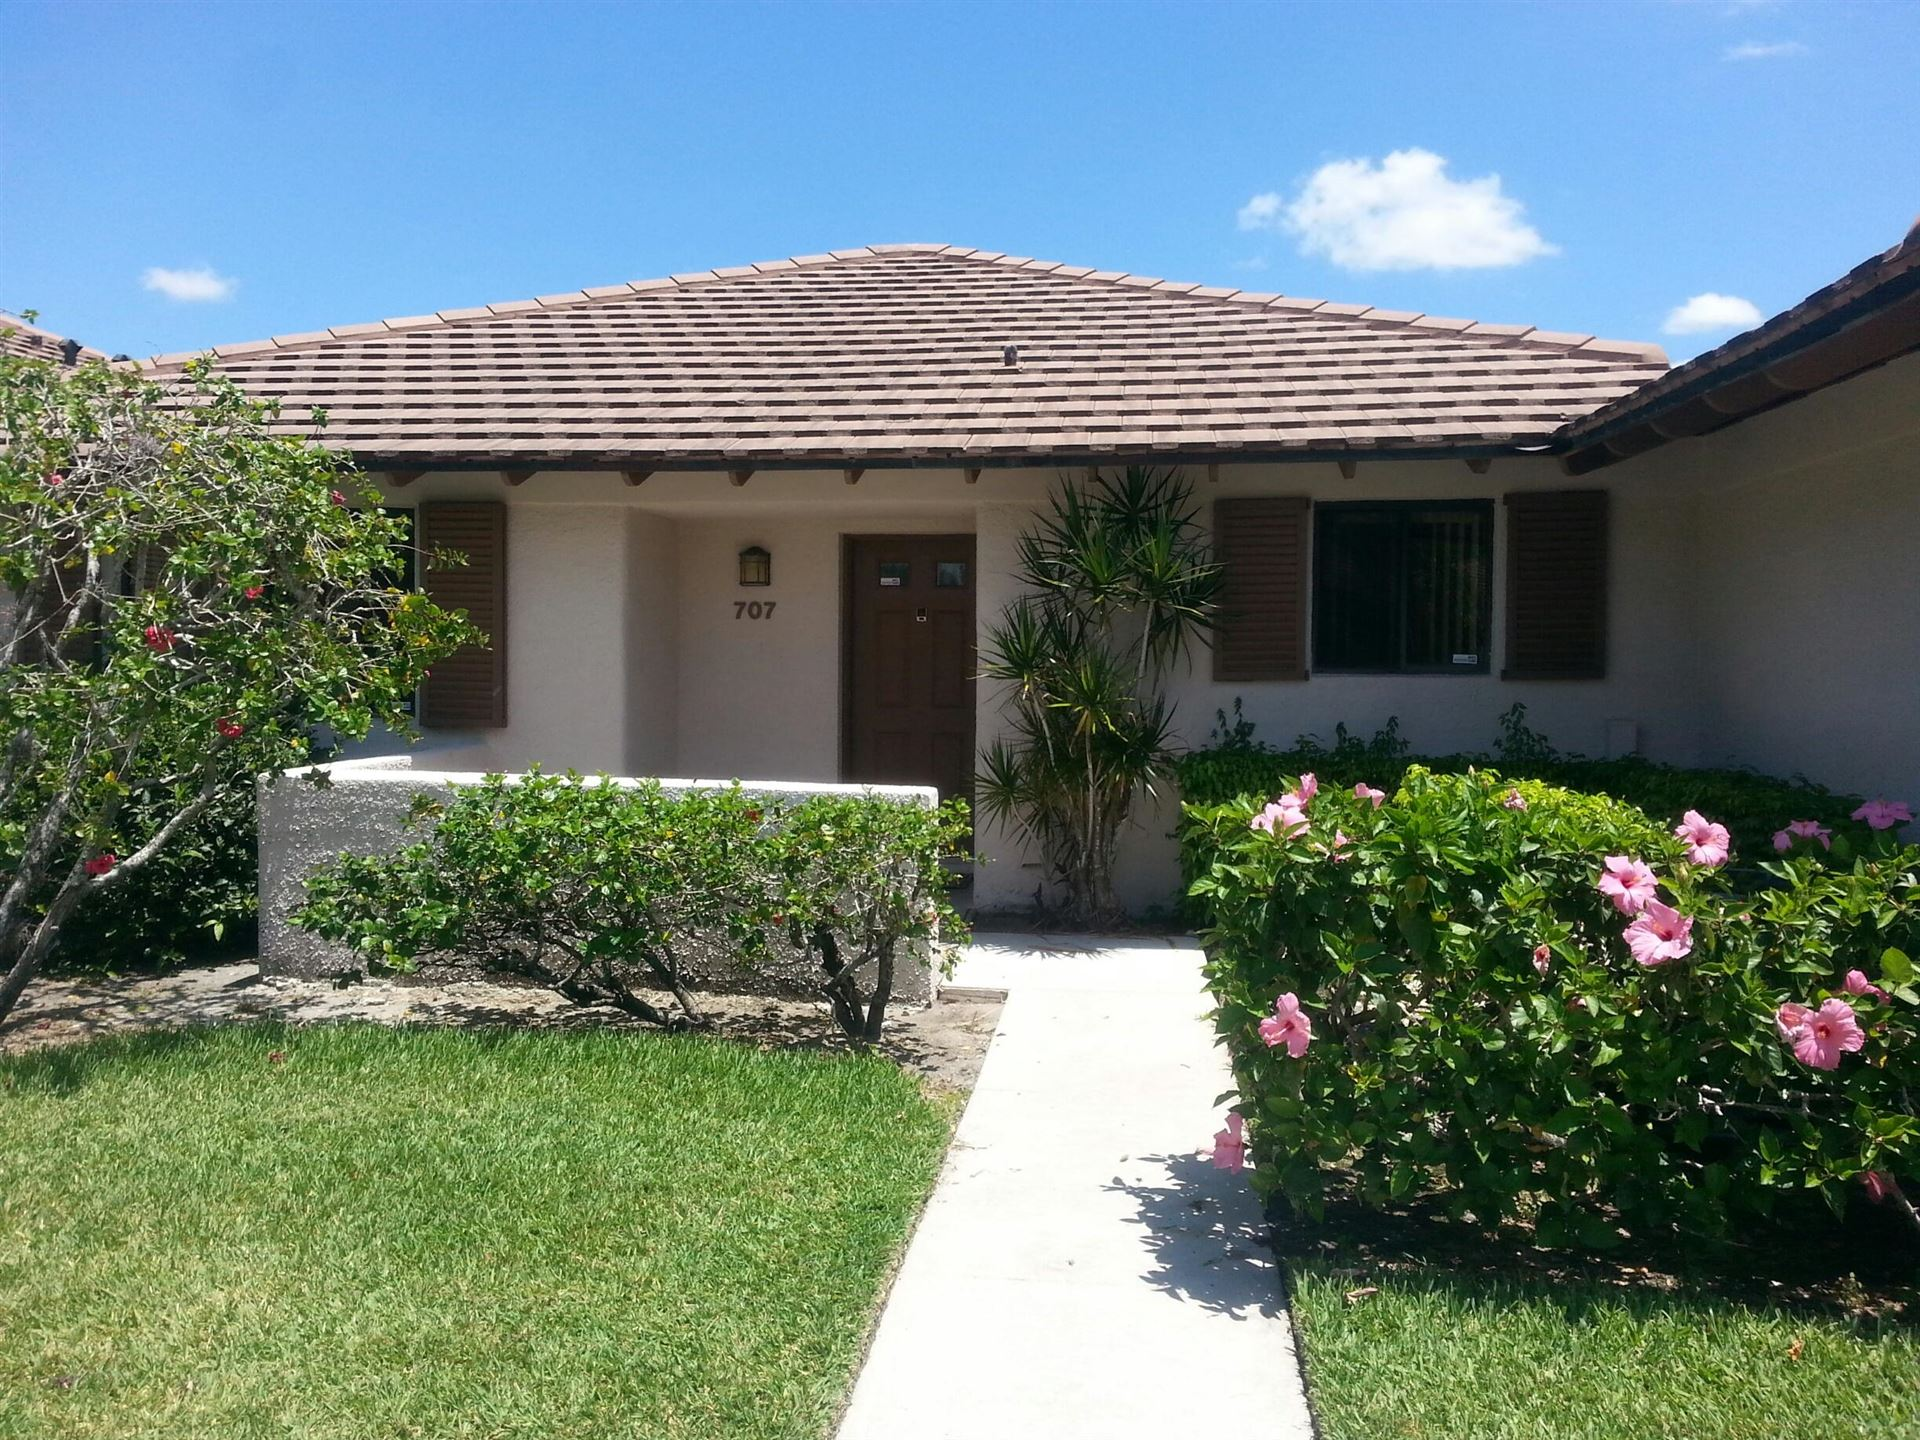 Photo of 707 Club Drive, Palm Beach Gardens, FL 33418 (MLS # RX-10687934)